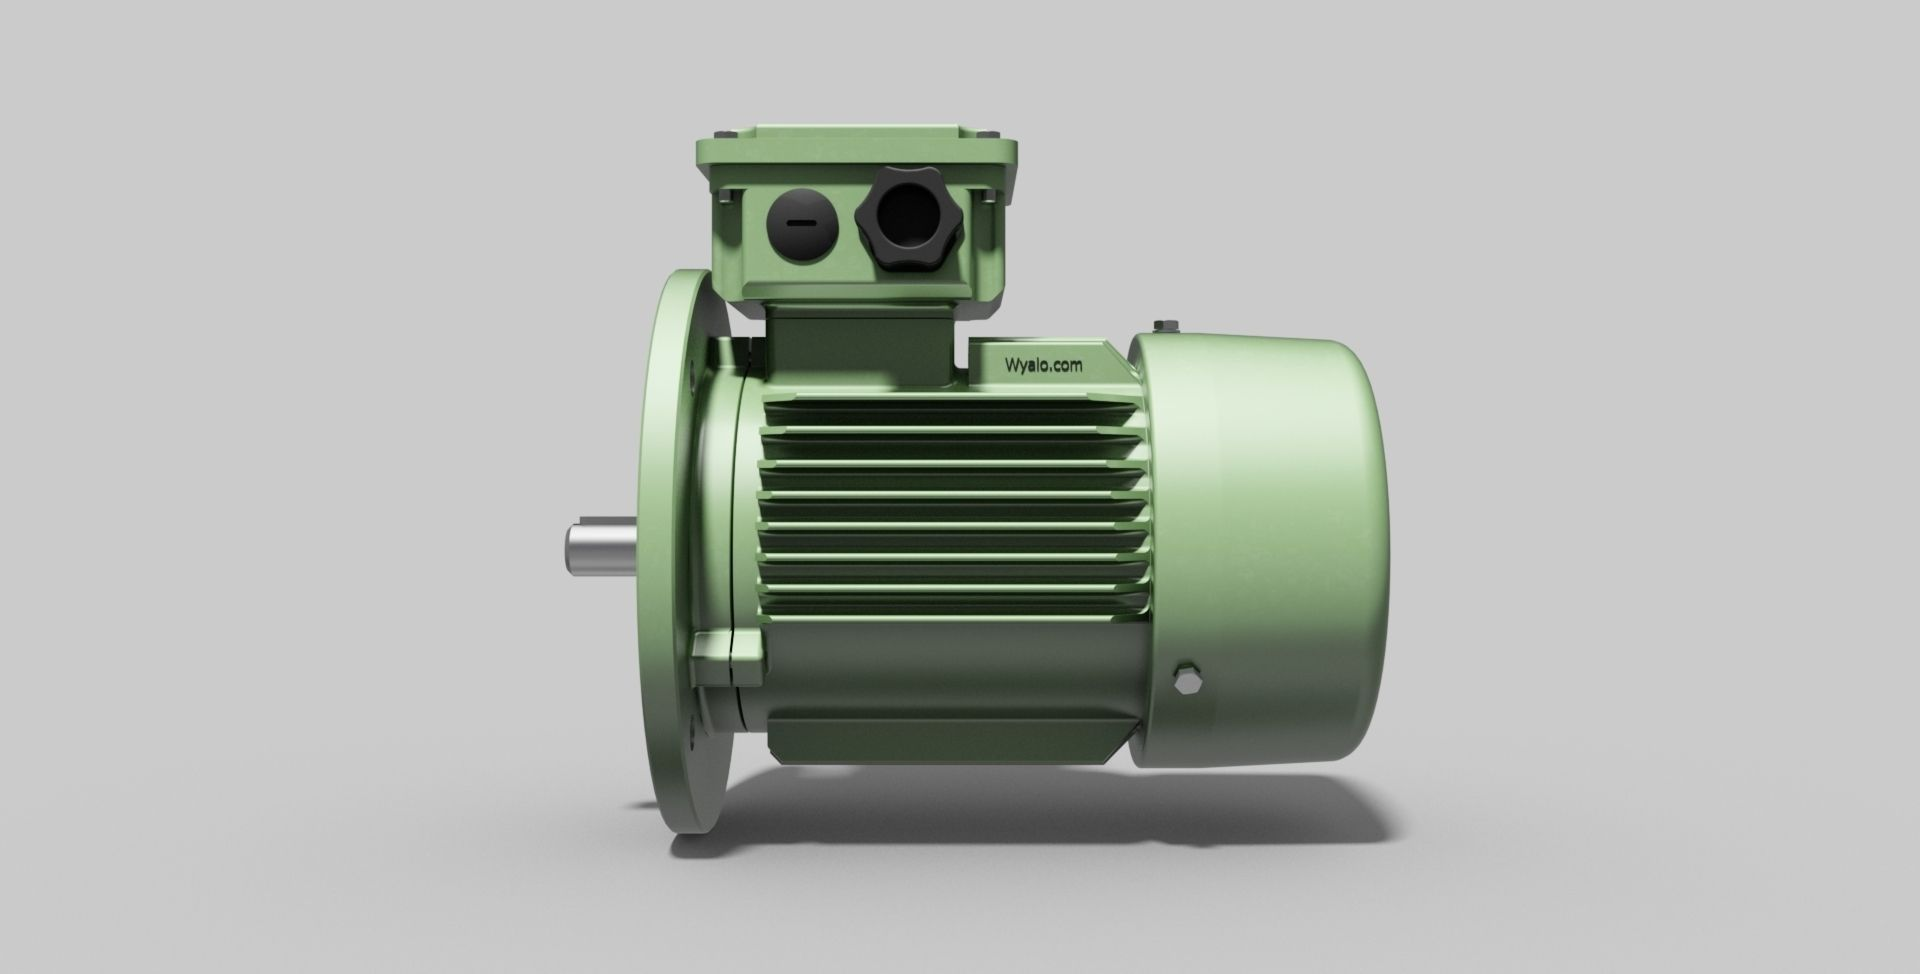 Iec80 b5 electric motor free 3d model dwg ipt stp Electric ac motors